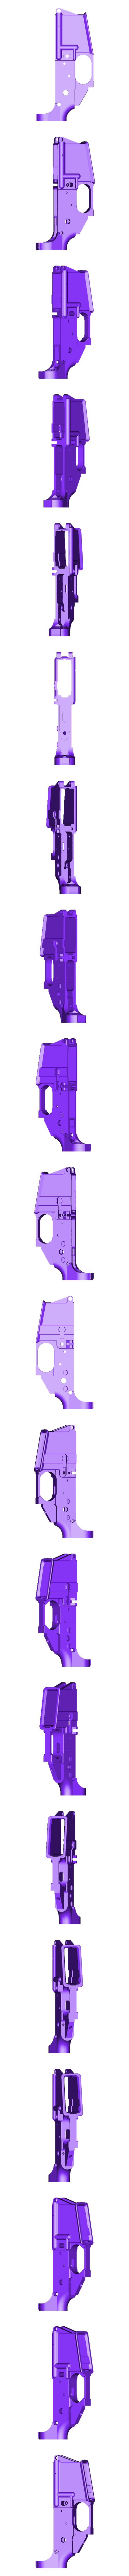 AR-15_Reinforced_Lower_Receiver.stl Download free STL file AR-15 Full Lower • 3D print template, idy26